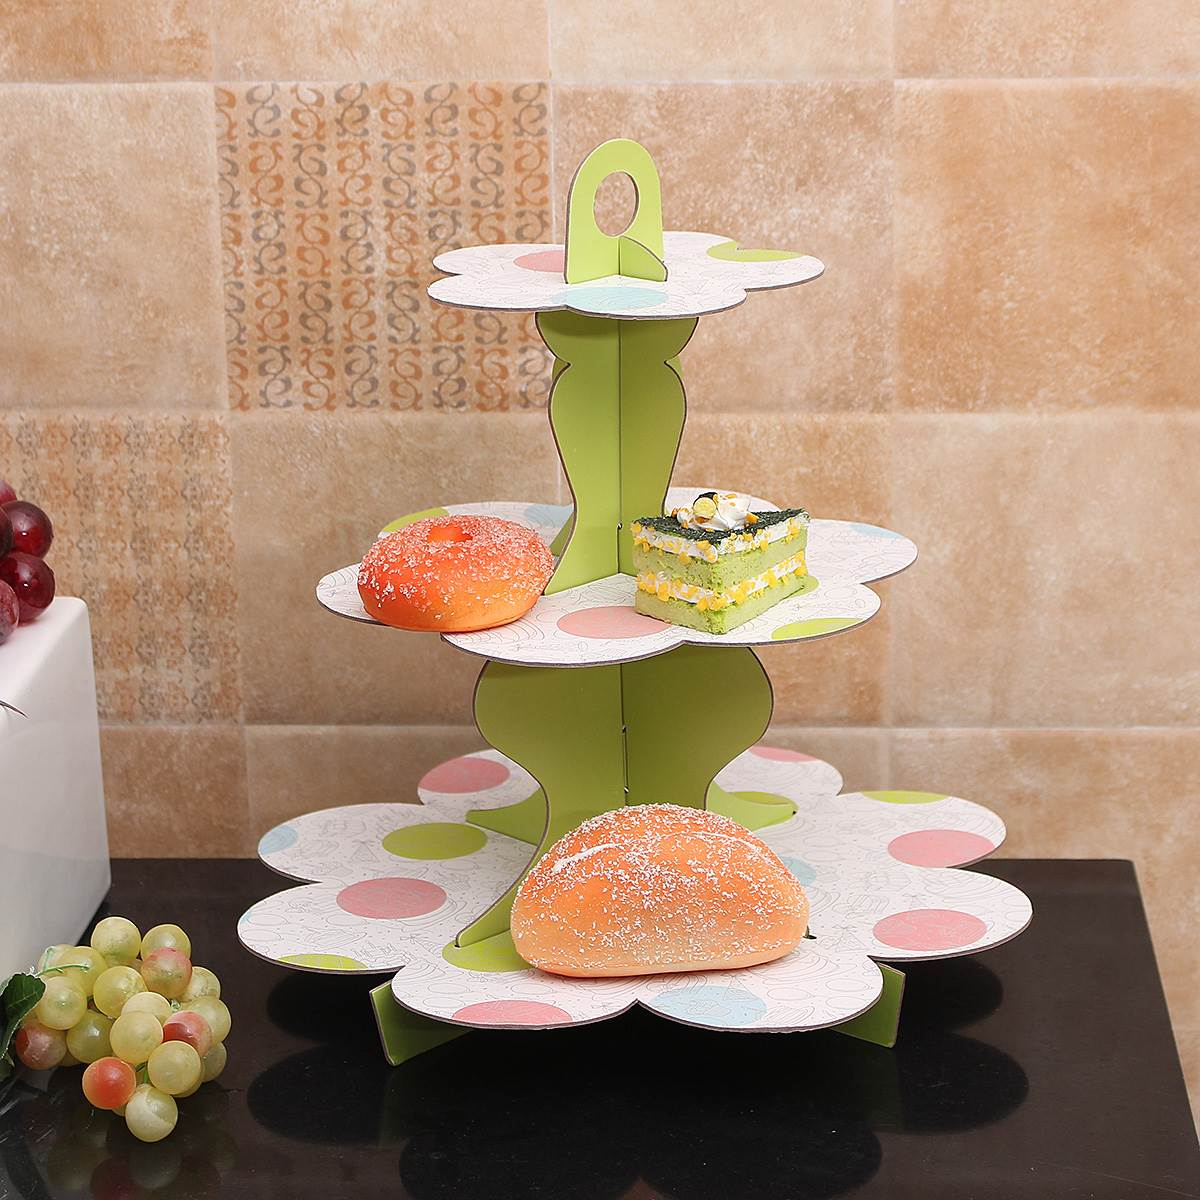 Cupcake Stand Cake Tier Online Shop 3 Tiers Diy Paper Dessert Candy Storage Holder Birthday Wedding Party Display Catering Serving Tools Supplies Aliexpress